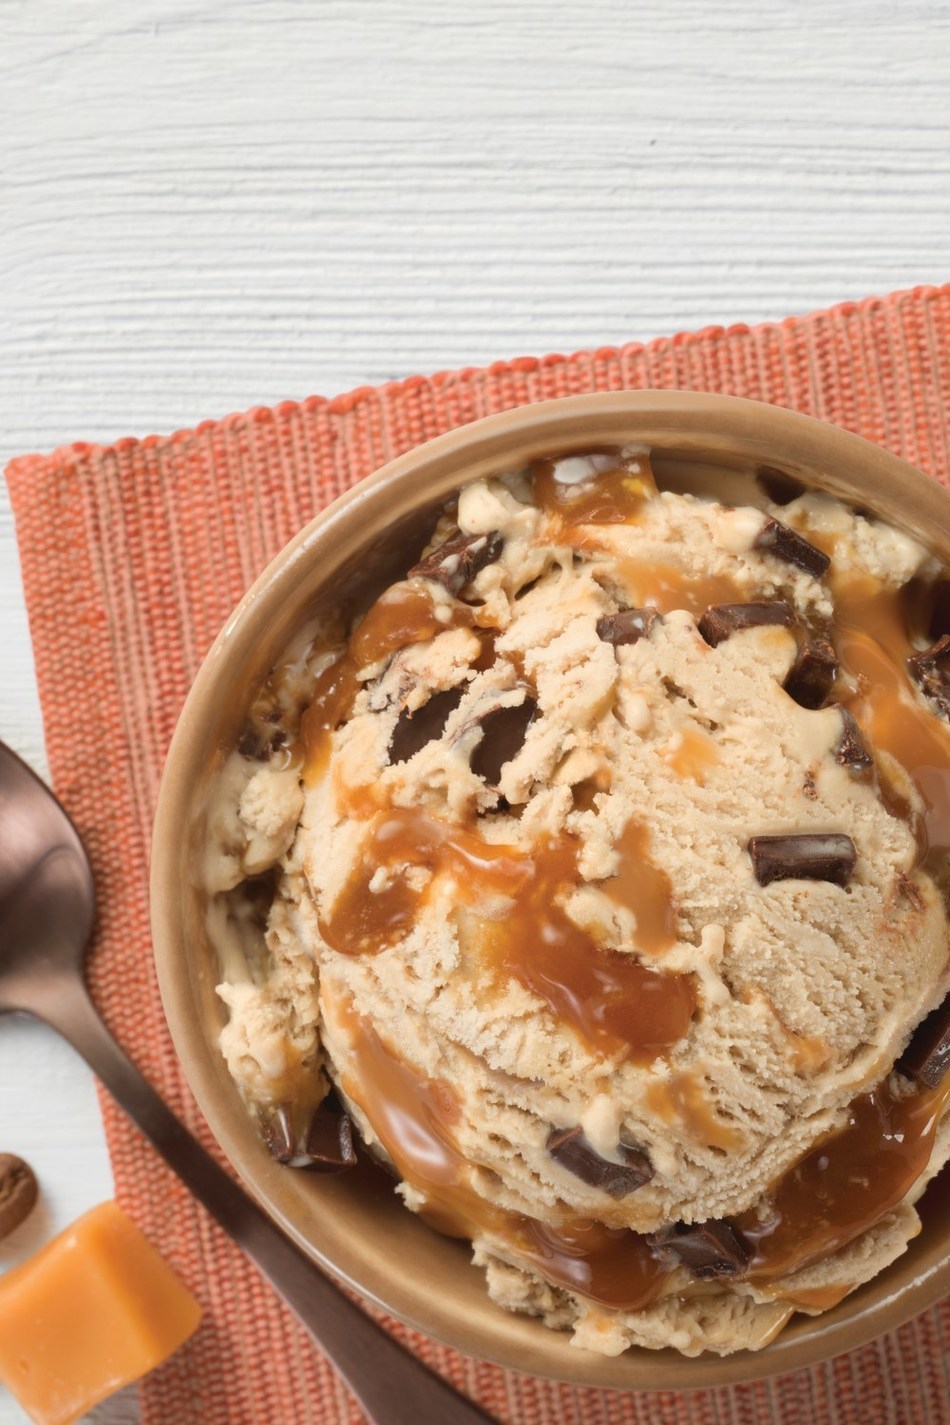 Baskin-Robbins' November Flavor of the Month, Non-Dairy and Vegan Coffee Caramel Chunk, is a plant-based, espresso-flavored ice cream full of chocolate chunks and covered with a caramel ribbon. For more information, visit www.baskinrobbins.com.